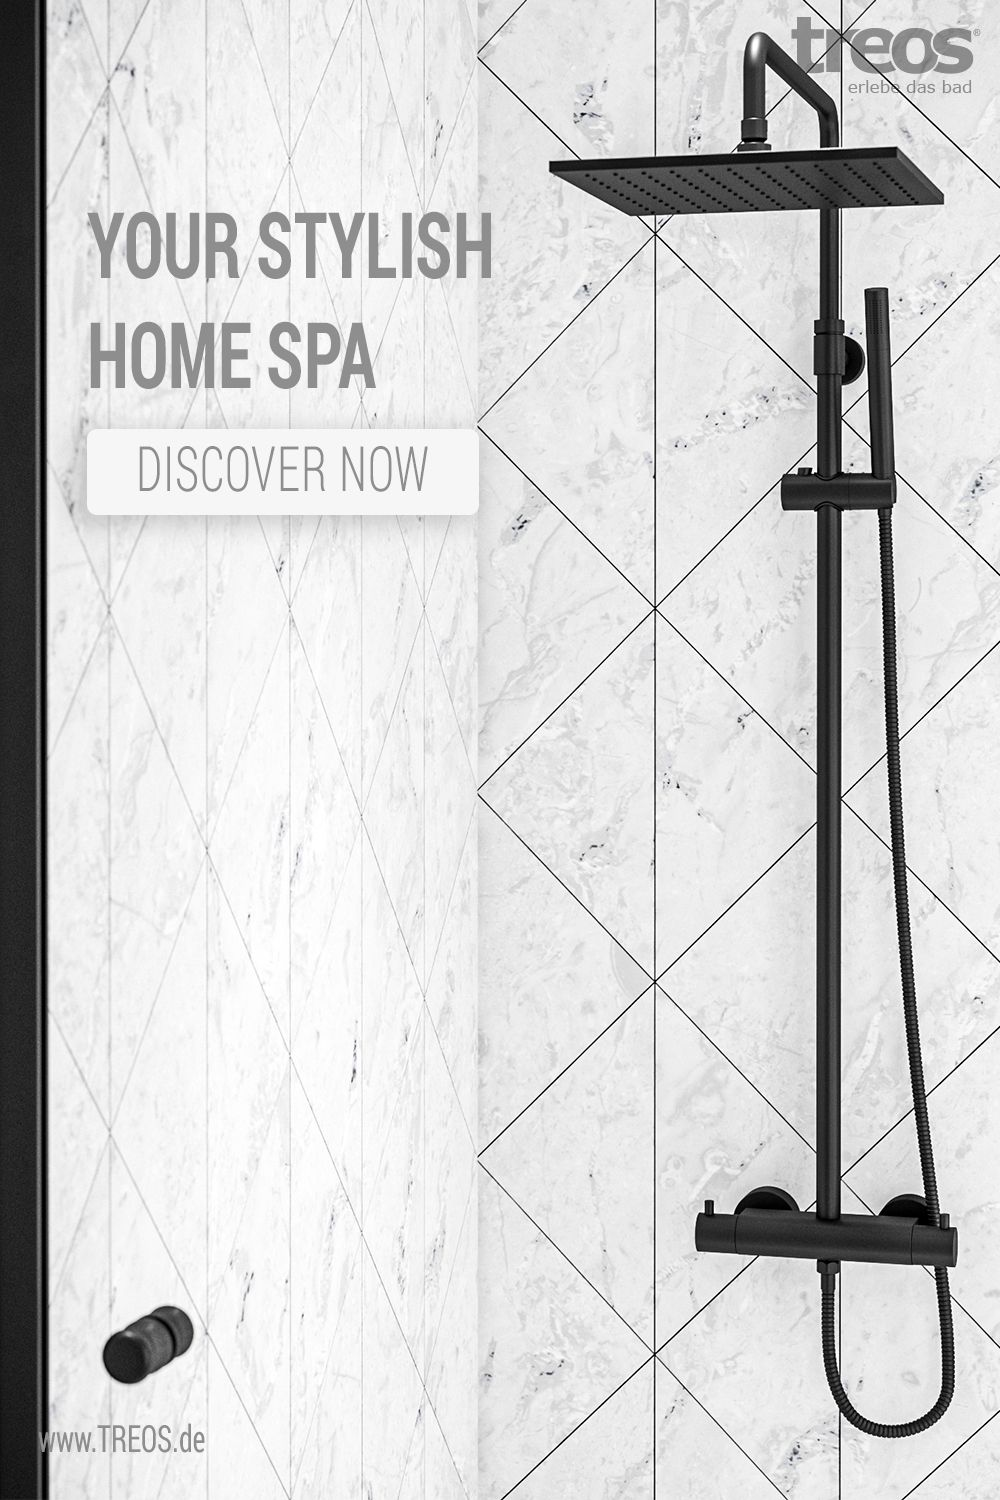 The Best Option For Your Home Spa With A Cool Urban Look In Black Matt Create Your Perfect Wellness Oasis With The Design Prodcu In 2020 Regendusche Dusche Kopfbrause